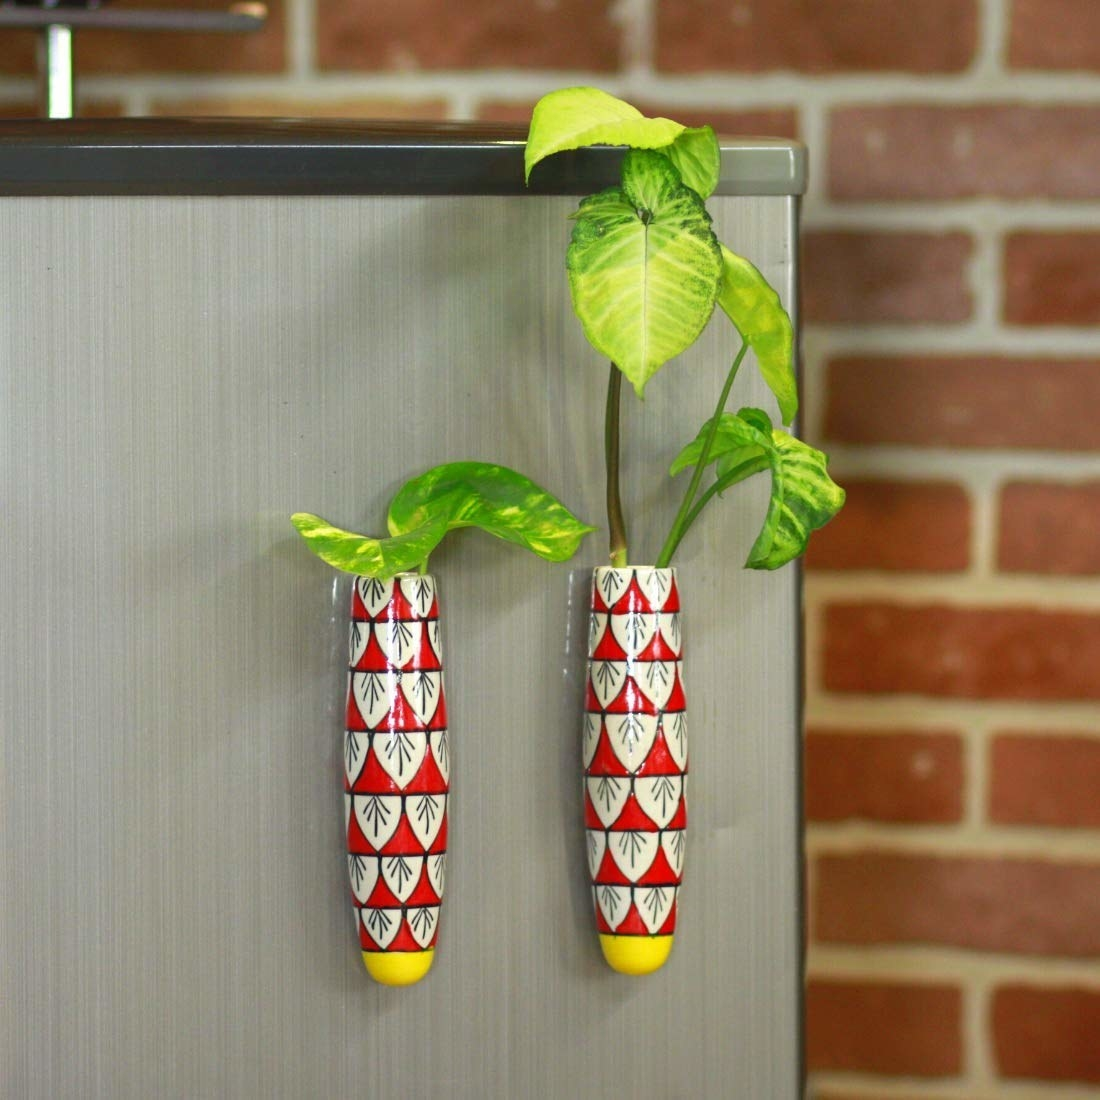 Planters attached to a cabinet.